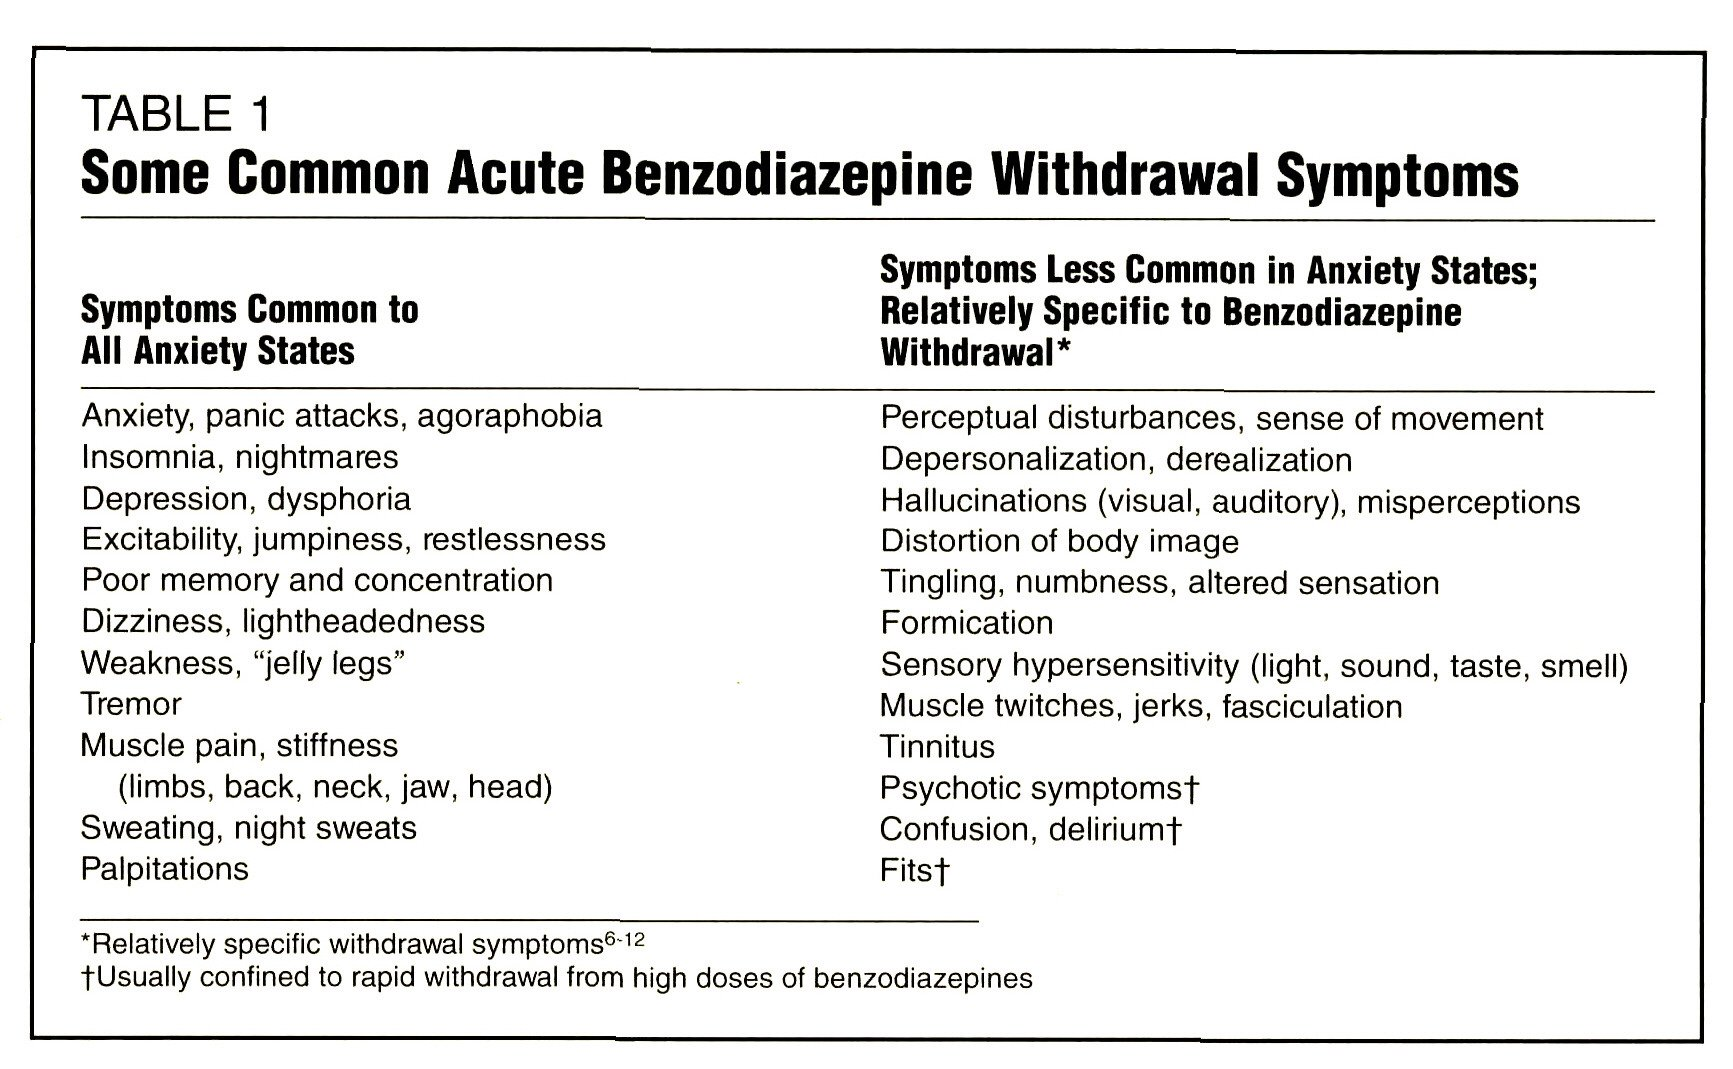 TABLE 1Some Common Acute Benzodiazepine Withdrawal Symptoms